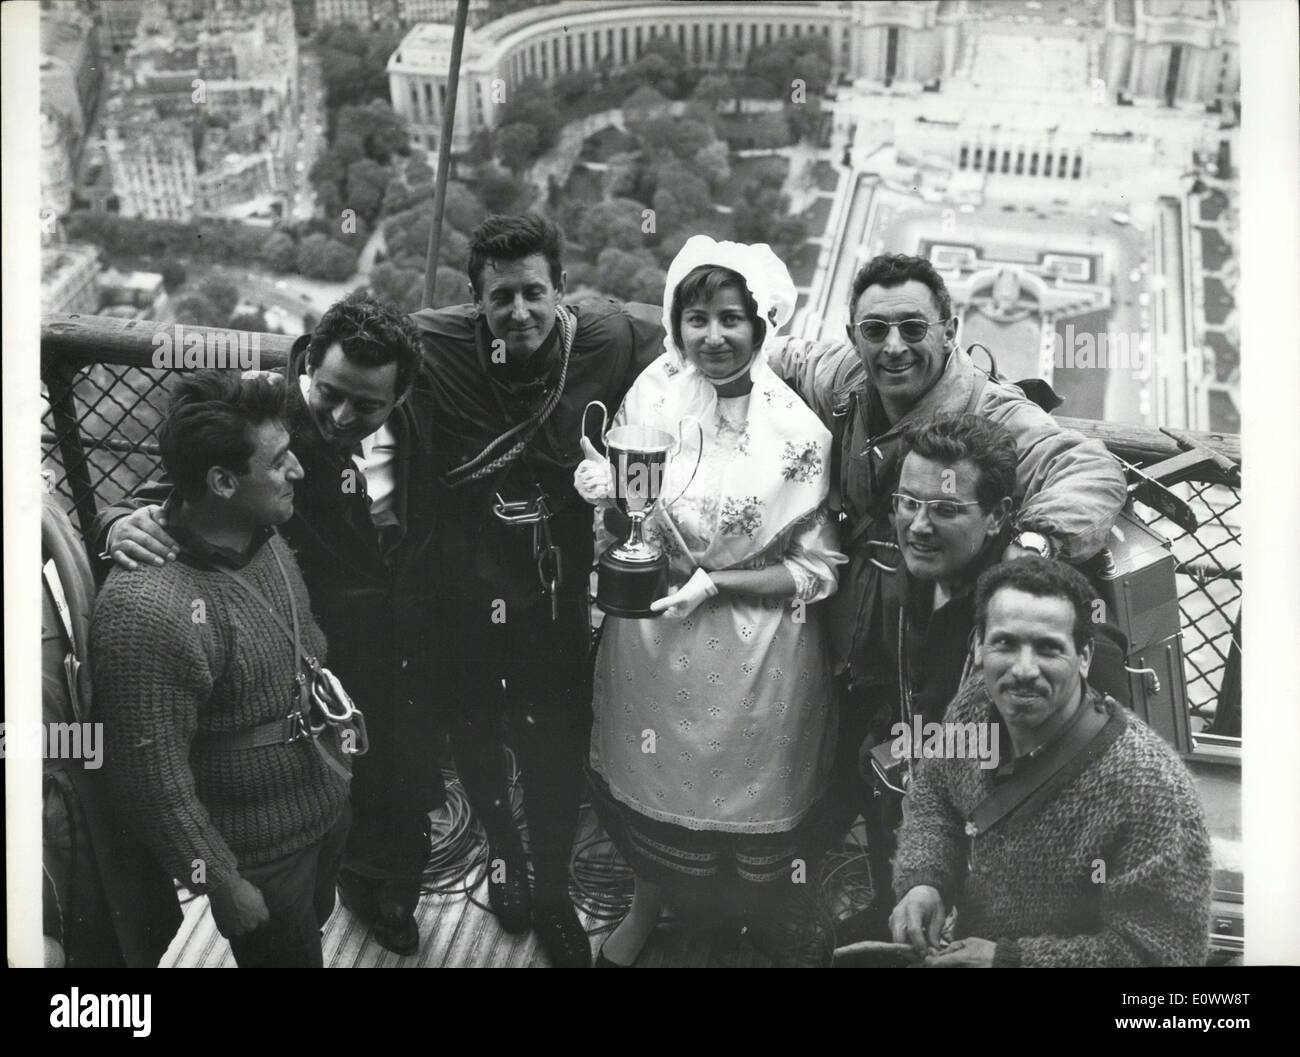 May 03, 1964 - Louisette Bertin with Alpinists at the Eiffel Tower - Stock Image